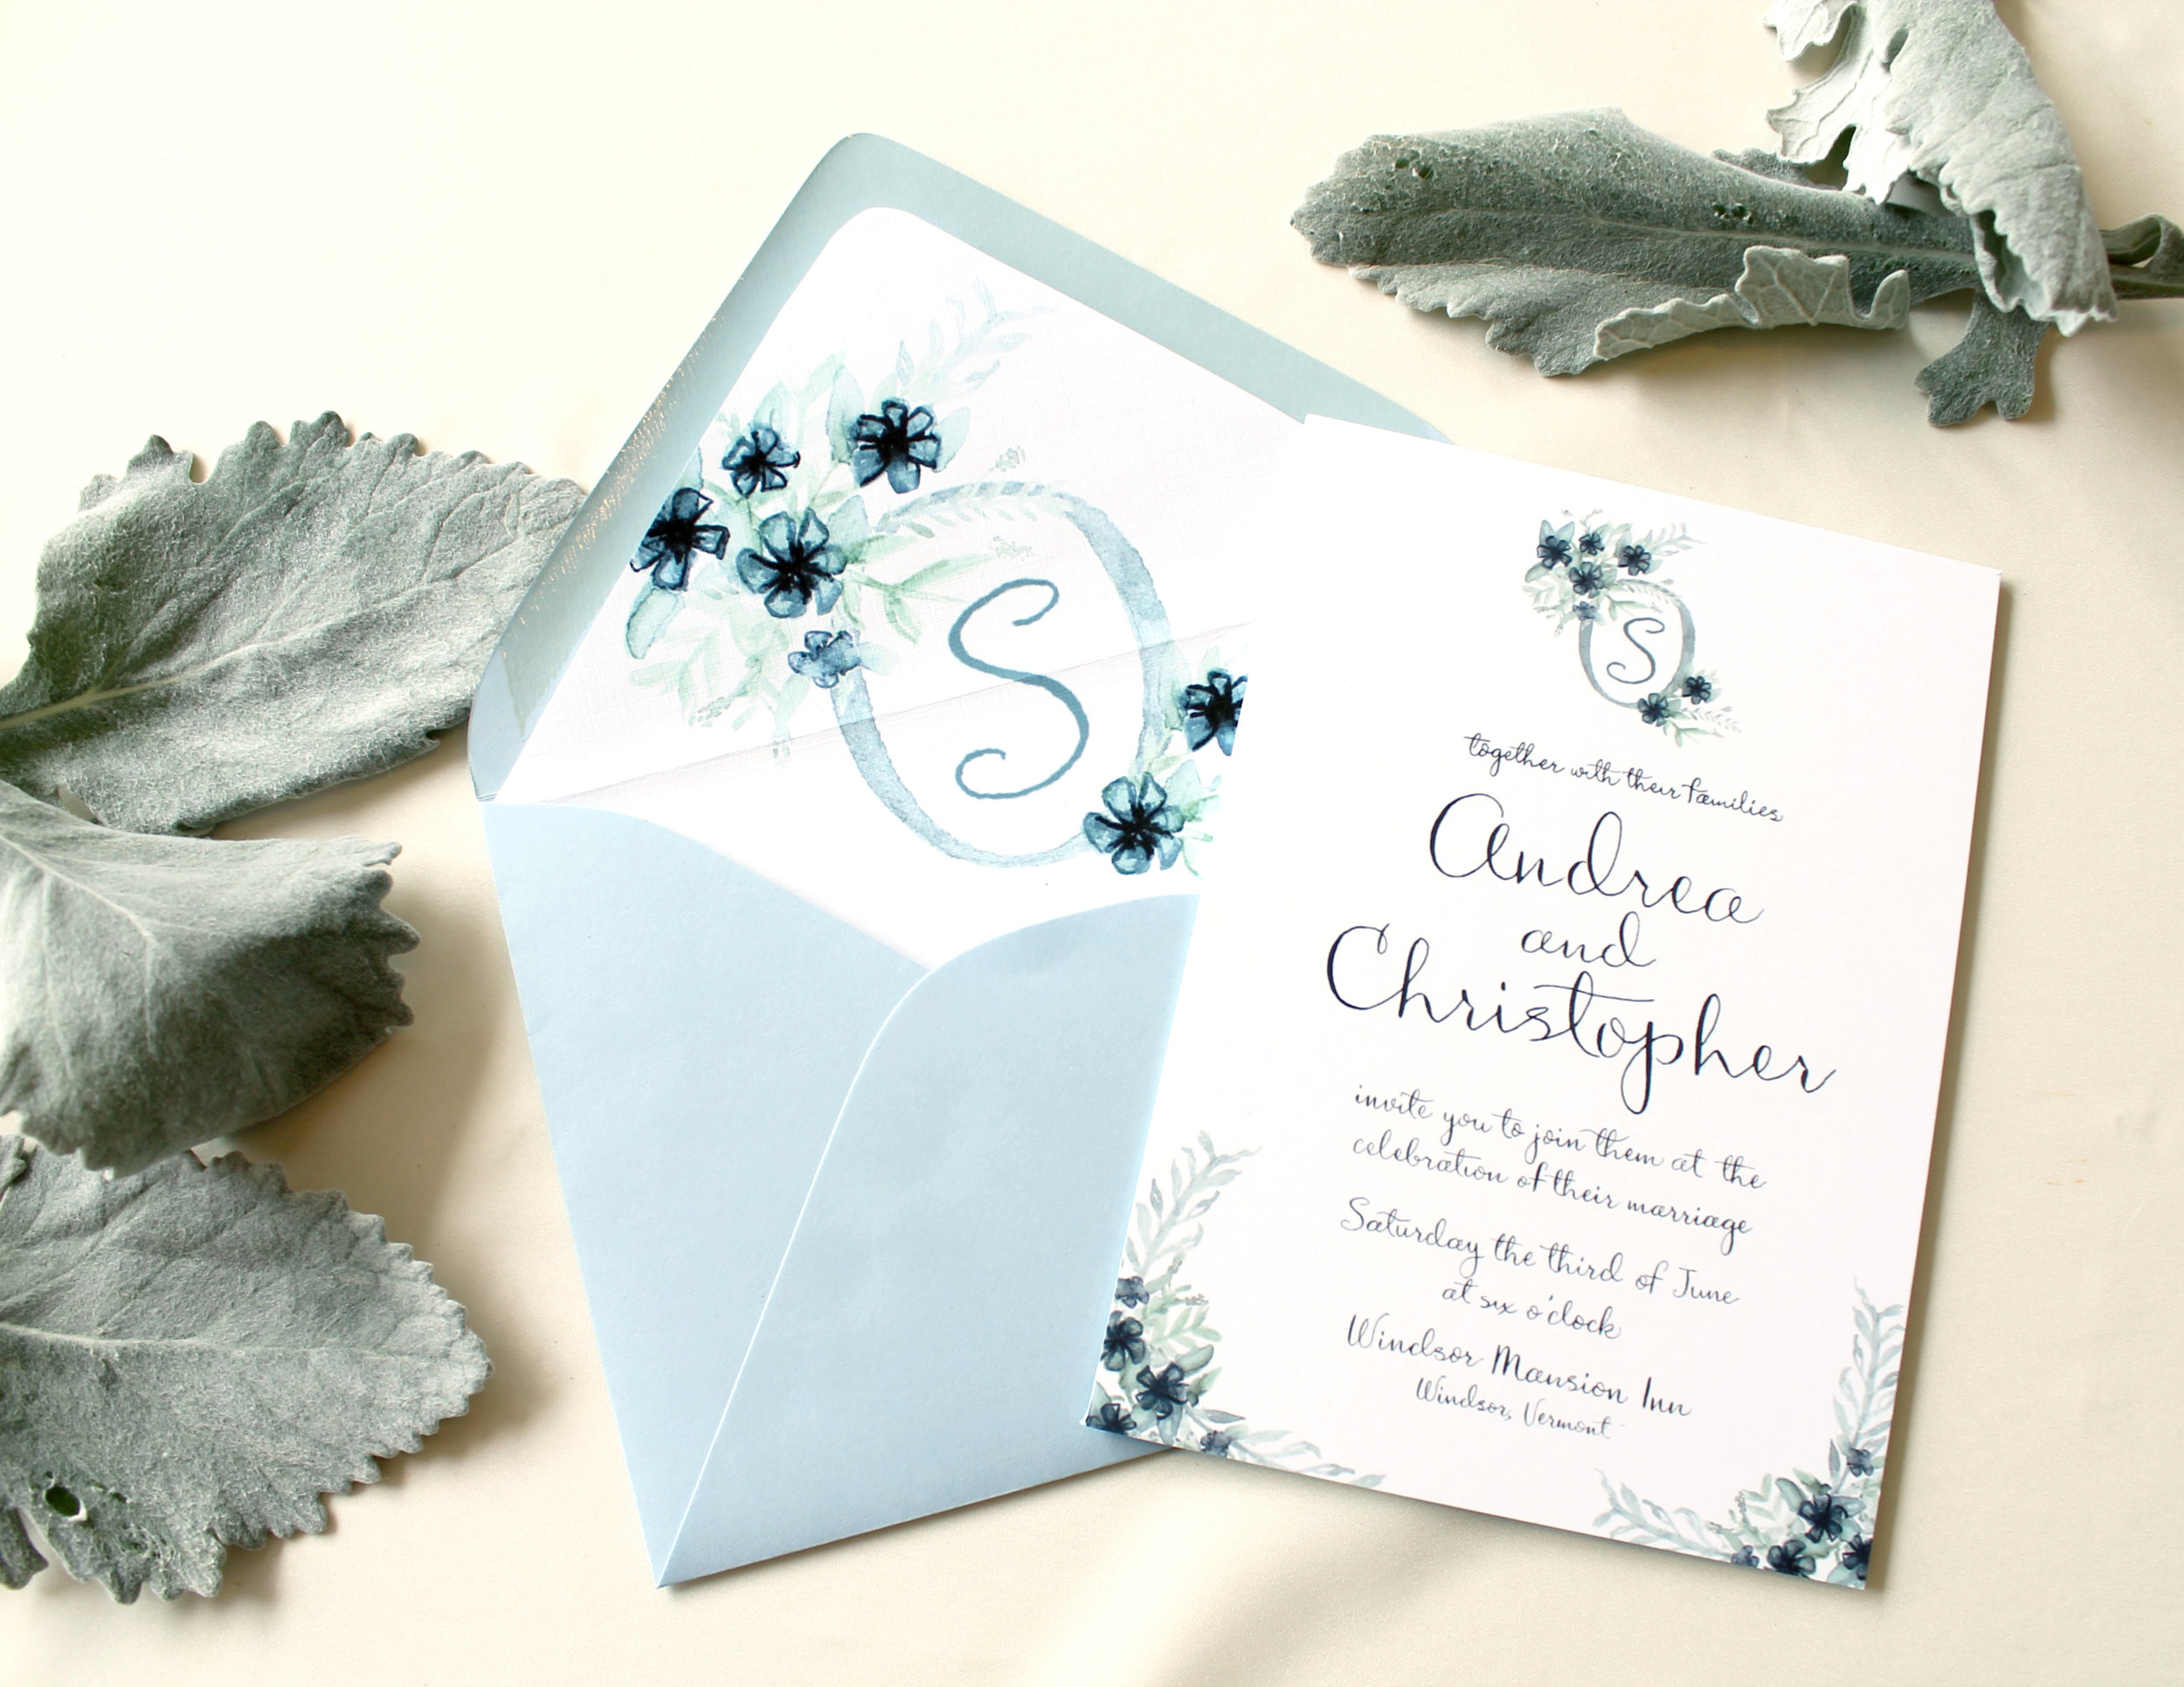 Blush and Blue Designs - Custom Wedding Invitation Designs, Raleigh wedding invitation designer